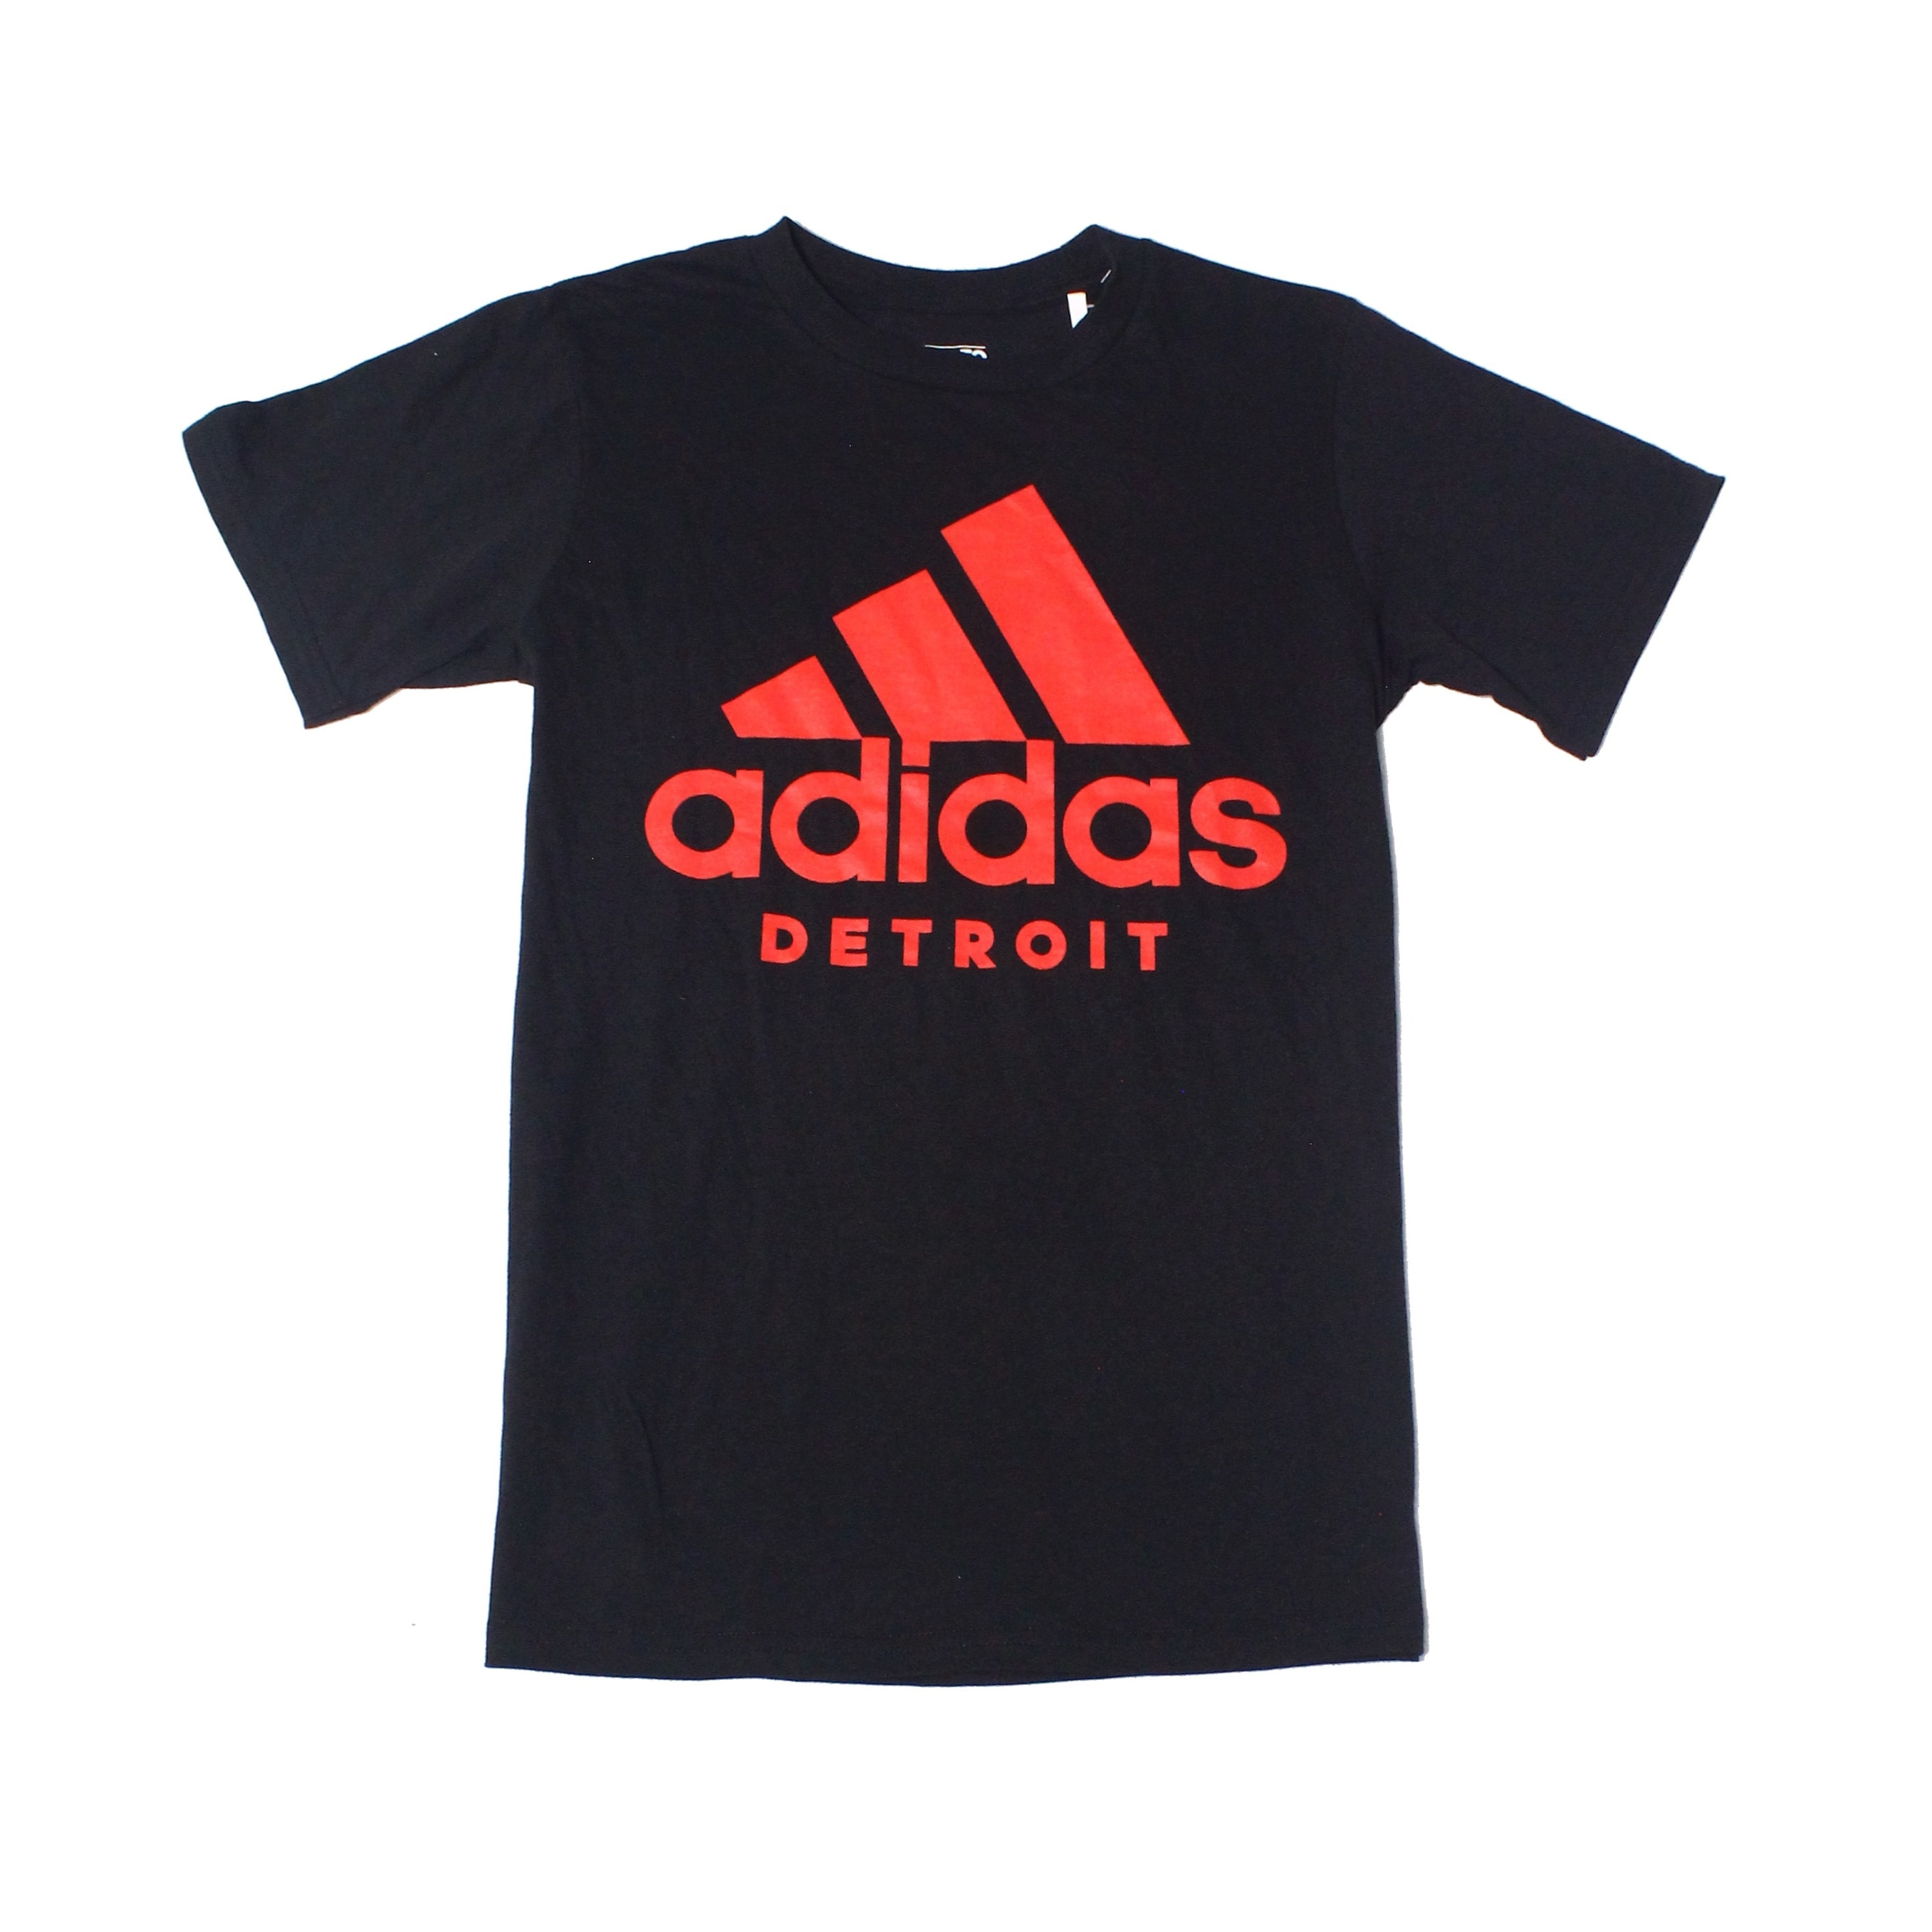 adidas s size t shirt